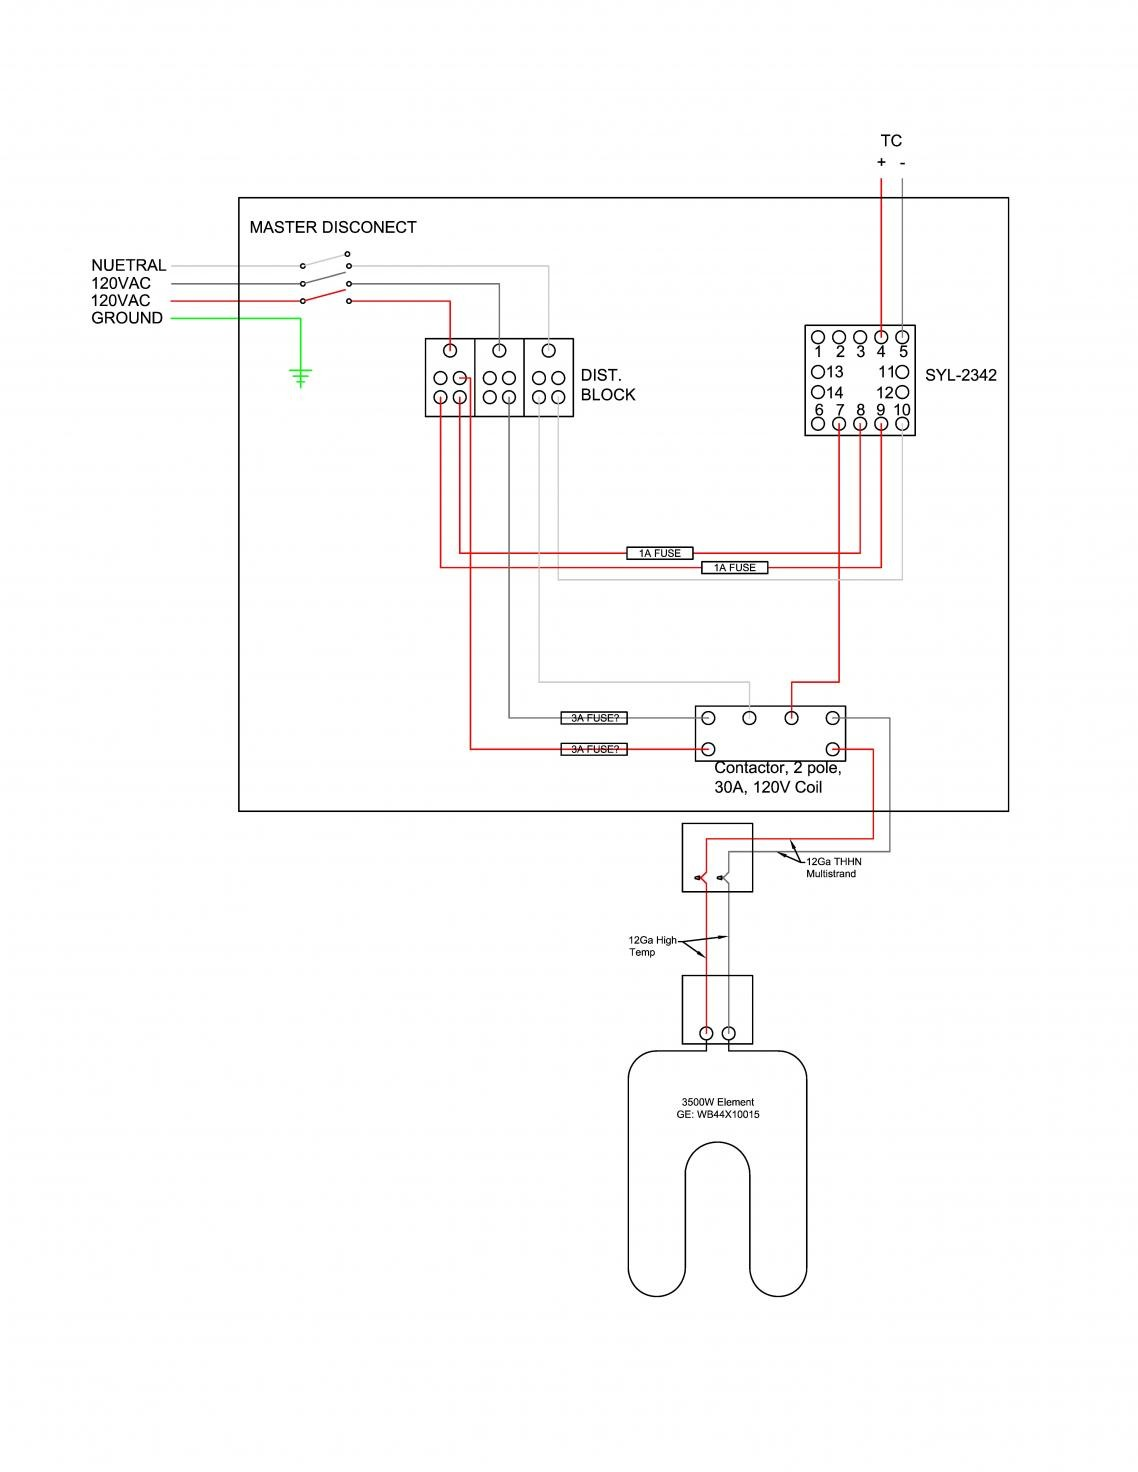 Powder Coating Oven Wiring Diagram on First build care to check my wiring diagram